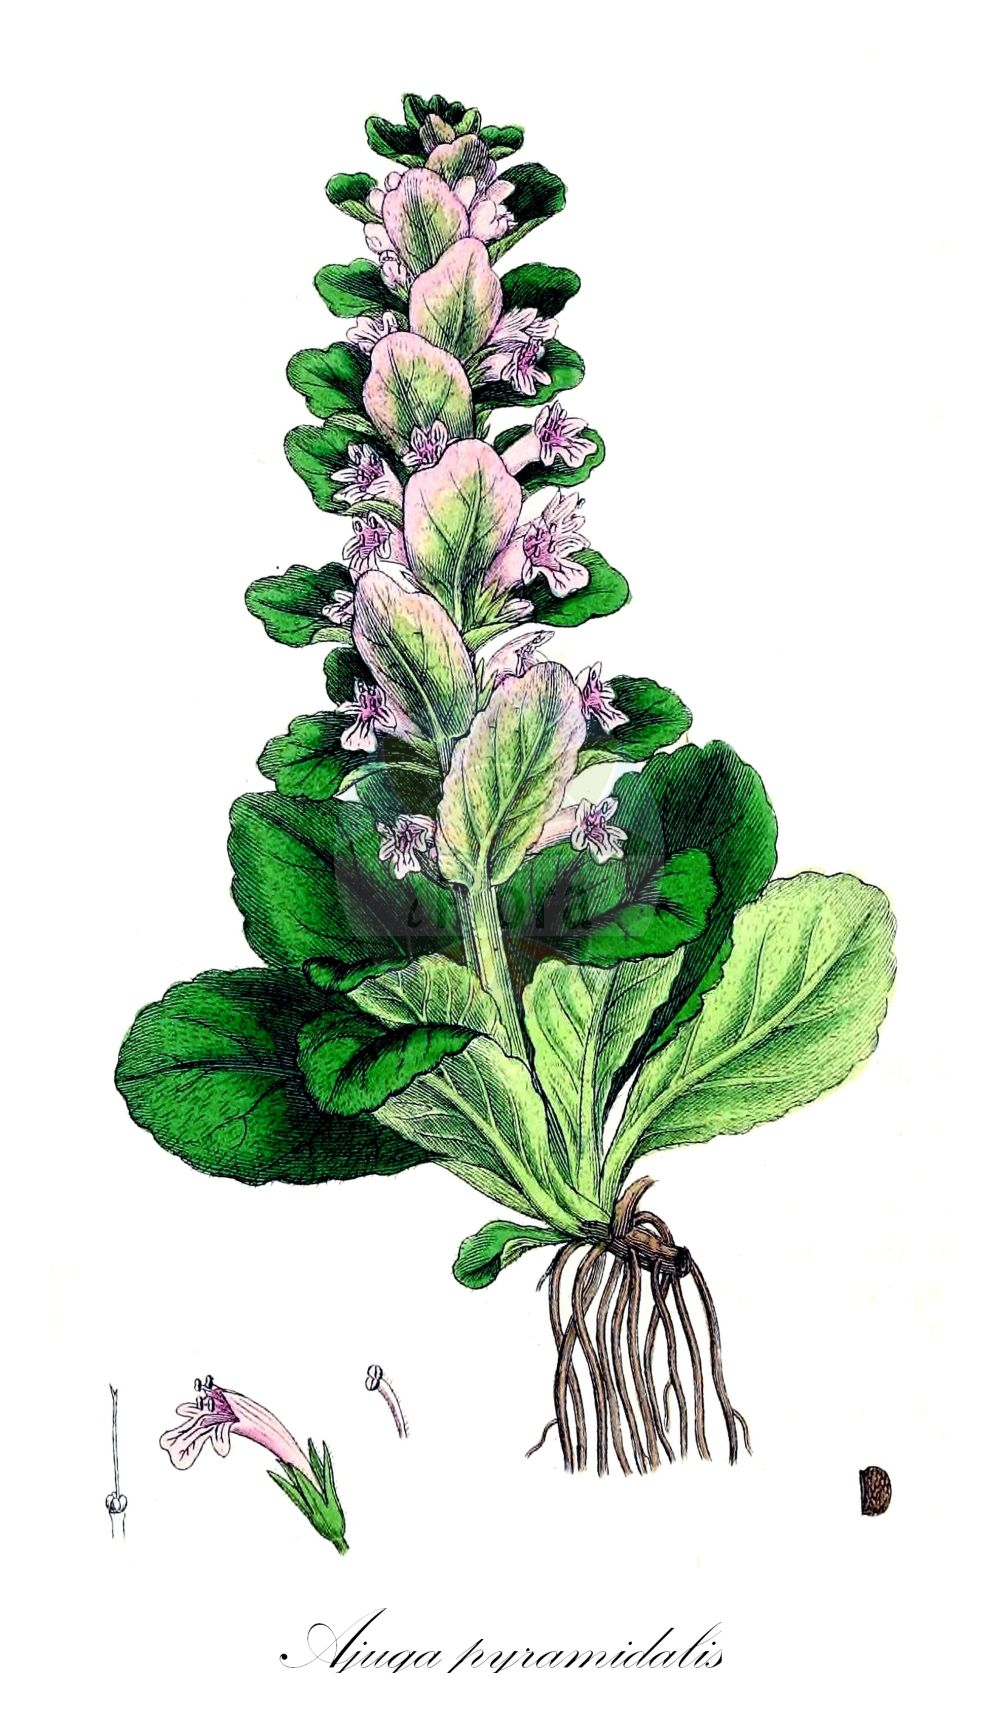 Historische Abbildung von Ajuga pyramidalis (Pyramiden-Guensel - Pyramidal Bugle). Das Bild zeigt Blatt, Bluete, Frucht und Same. ---- Historical Drawing of Ajuga pyramidalis (Pyramiden-Guensel - Pyramidal Bugle).The image is showing leaf, flower, fruit and seed.(Ajuga pyramidalis,Pyramiden-Guensel,Pyramidal Bugle,Bugula pyramidalis,Bulga pyramidalis,Teucrium pyramidale,Limestone Bugle,Ajuga,Guensel,Bugle,Lamiaceae,Lippenbluetengewaechse;Lippenbluetler,Nettle family,Blatt,Bluete,Frucht,Same,leaf,flower,fruit,seed,Sowerby (1790-1813))